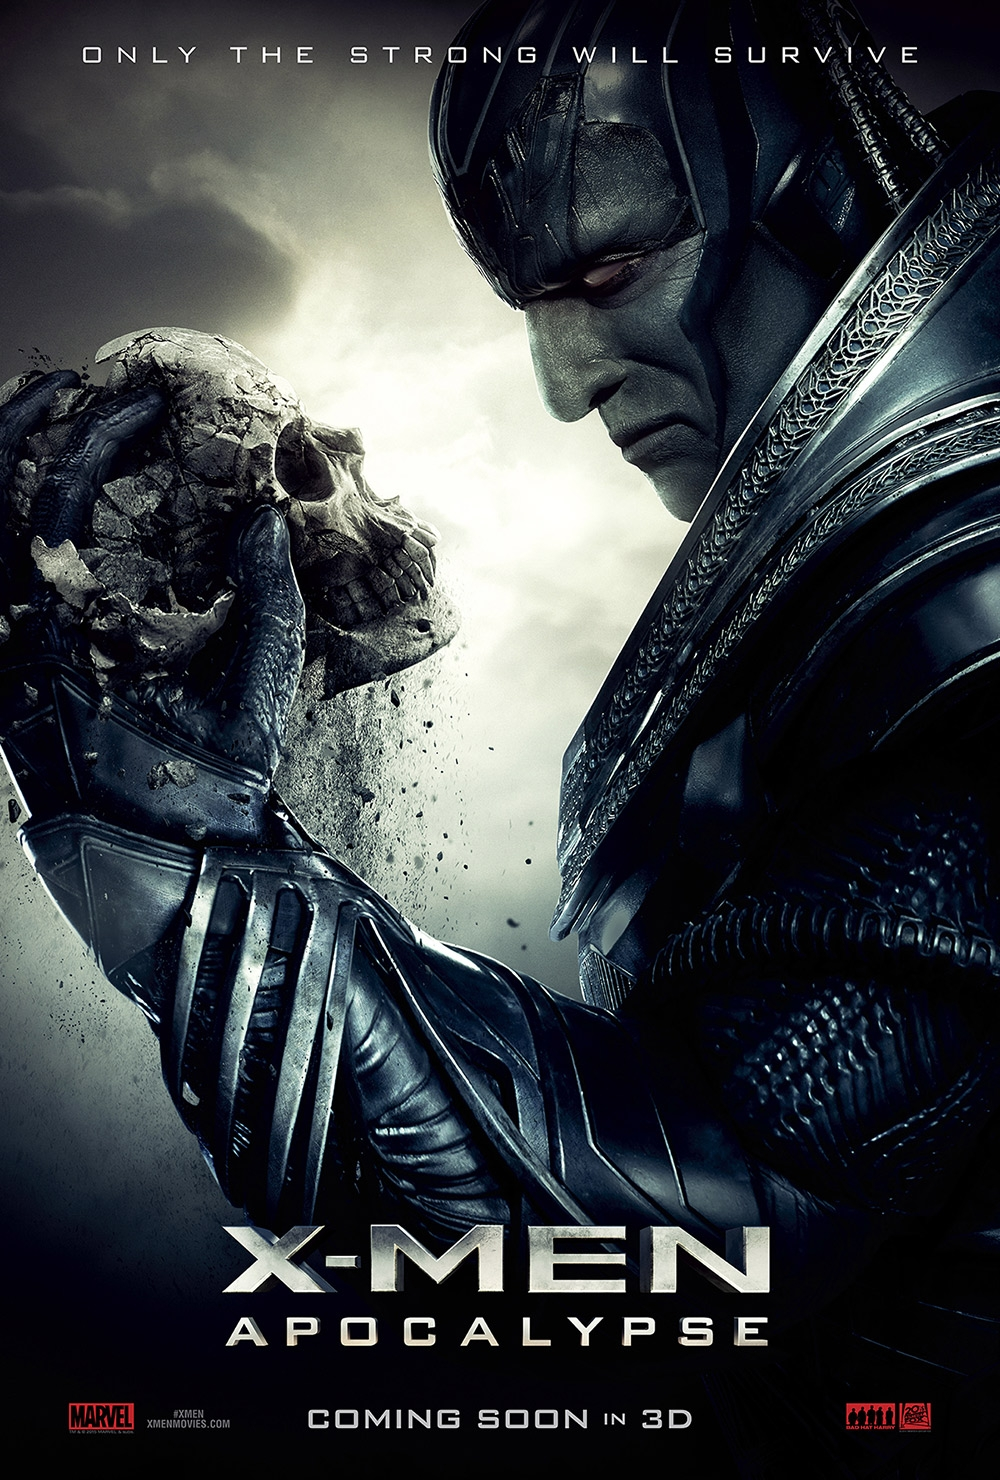 xmen-one-sheet2.jpg